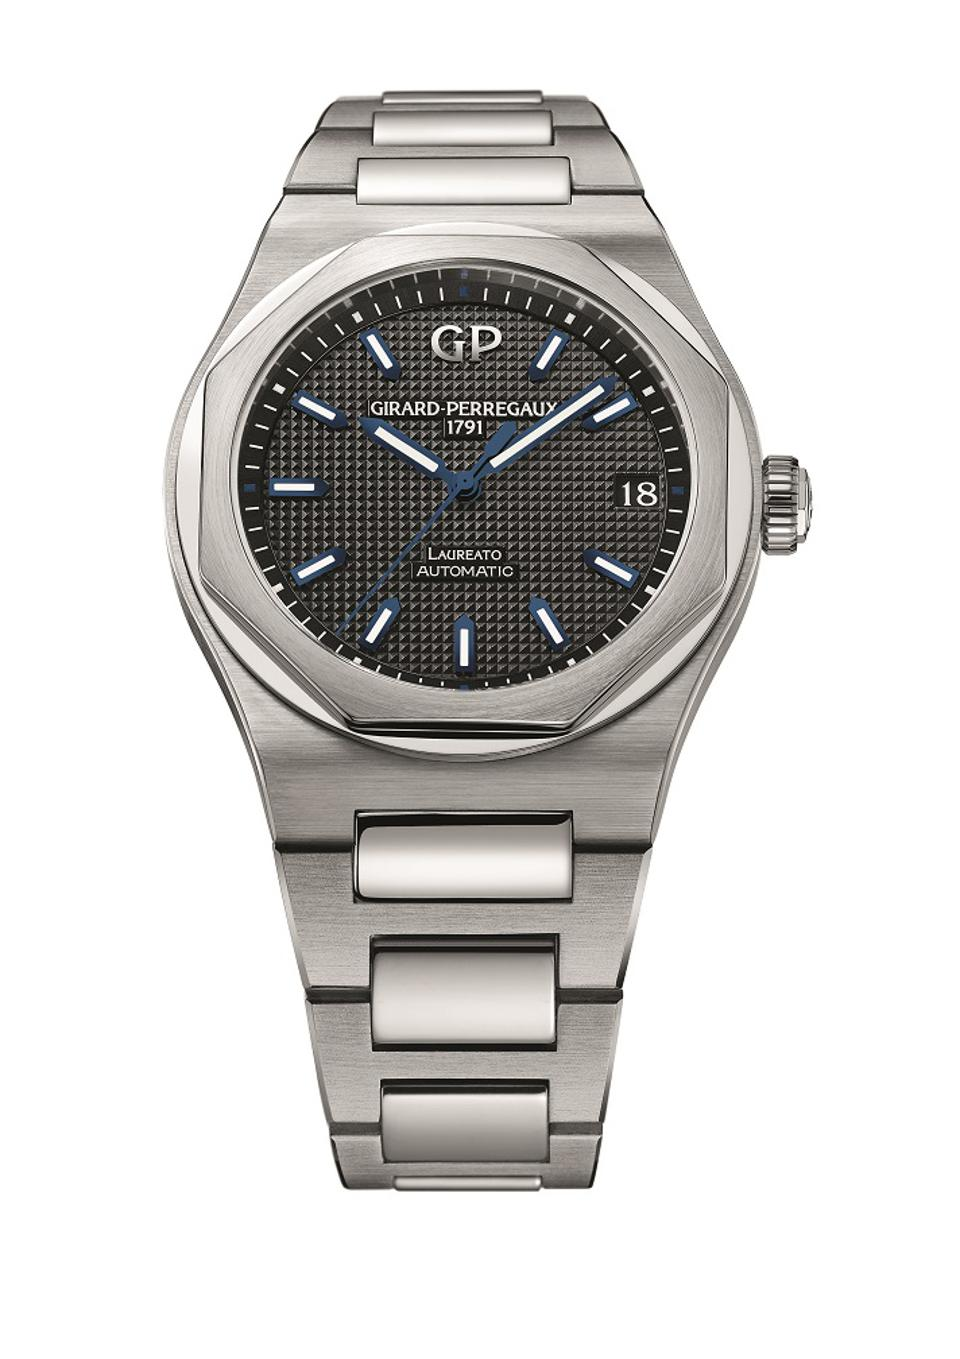 Limited-Edition Girard-Perregaux Laureato valued at $11,600 being offered at auction